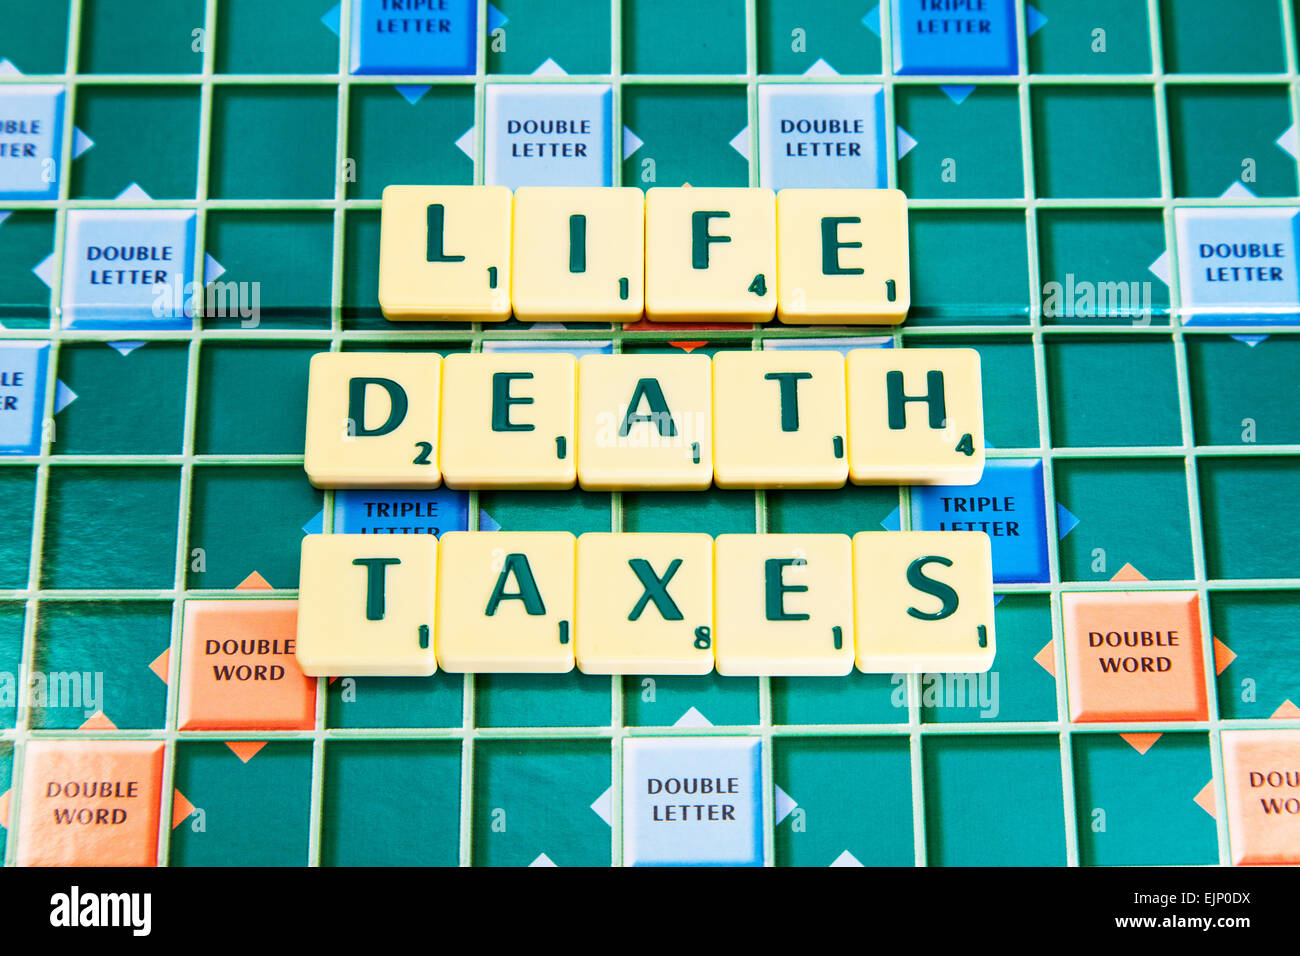 life death taxes only 3 things to be sure of in life words using scrabble tiles to illustrate spelling spell out - Stock Image